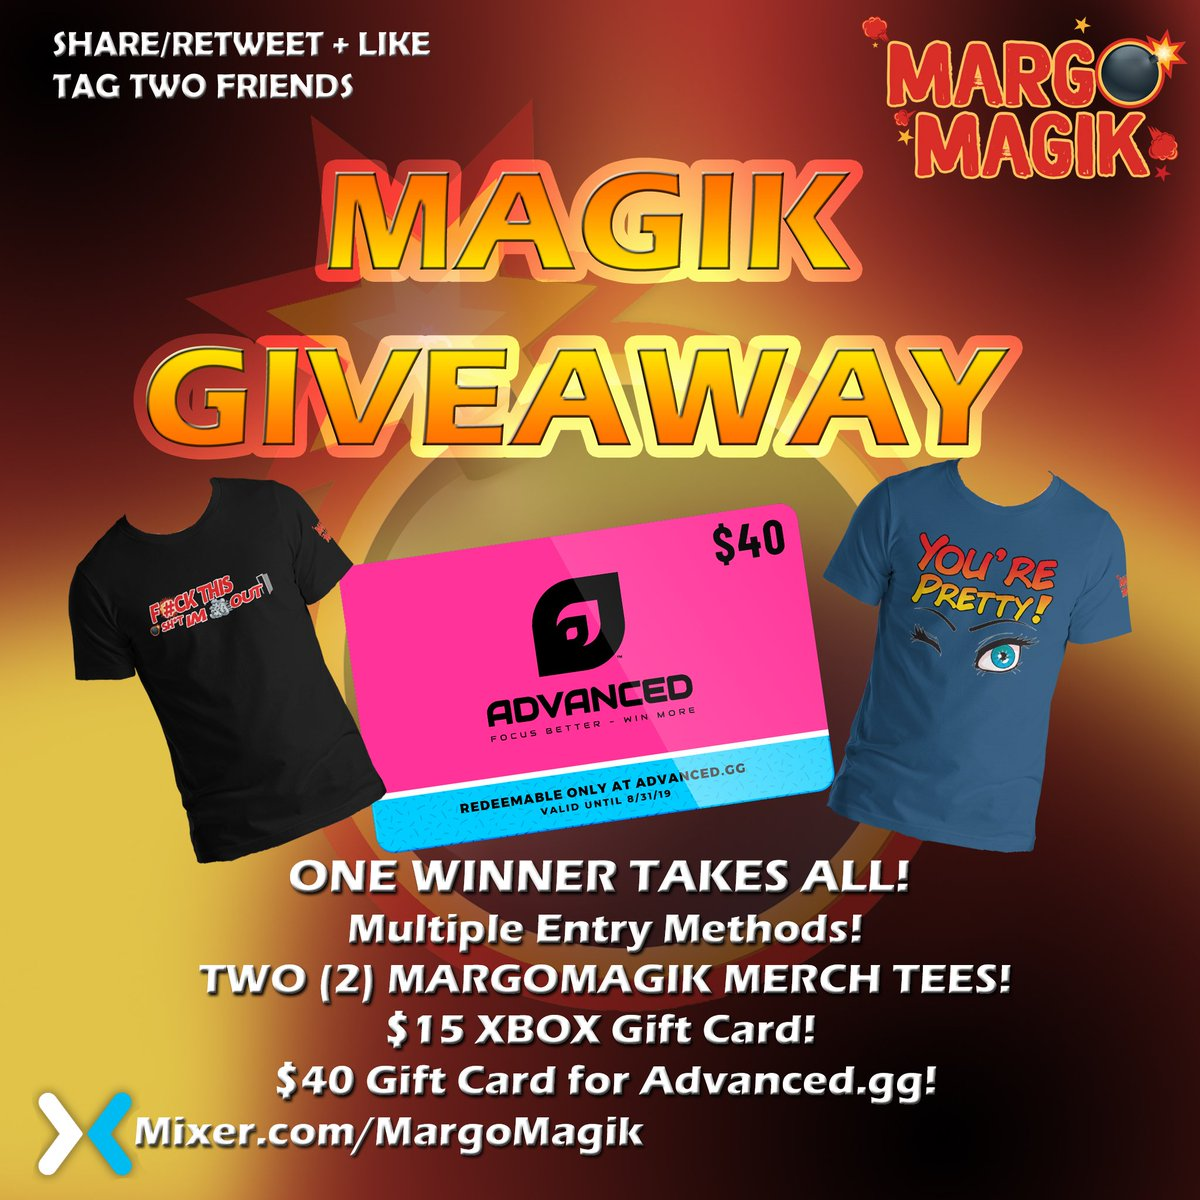 🔥💣GIVEAWAY 💣🔥  Enter my giveaway at   In partnership with @Advanced_GG and @TheMarvelFactor you can get a few sweet T-Shirts and get some DELICIOUS Advancedgg Focus to try for yourself! ♥ Better Hurry though contest closes July 13th!  #giveaway #Hype